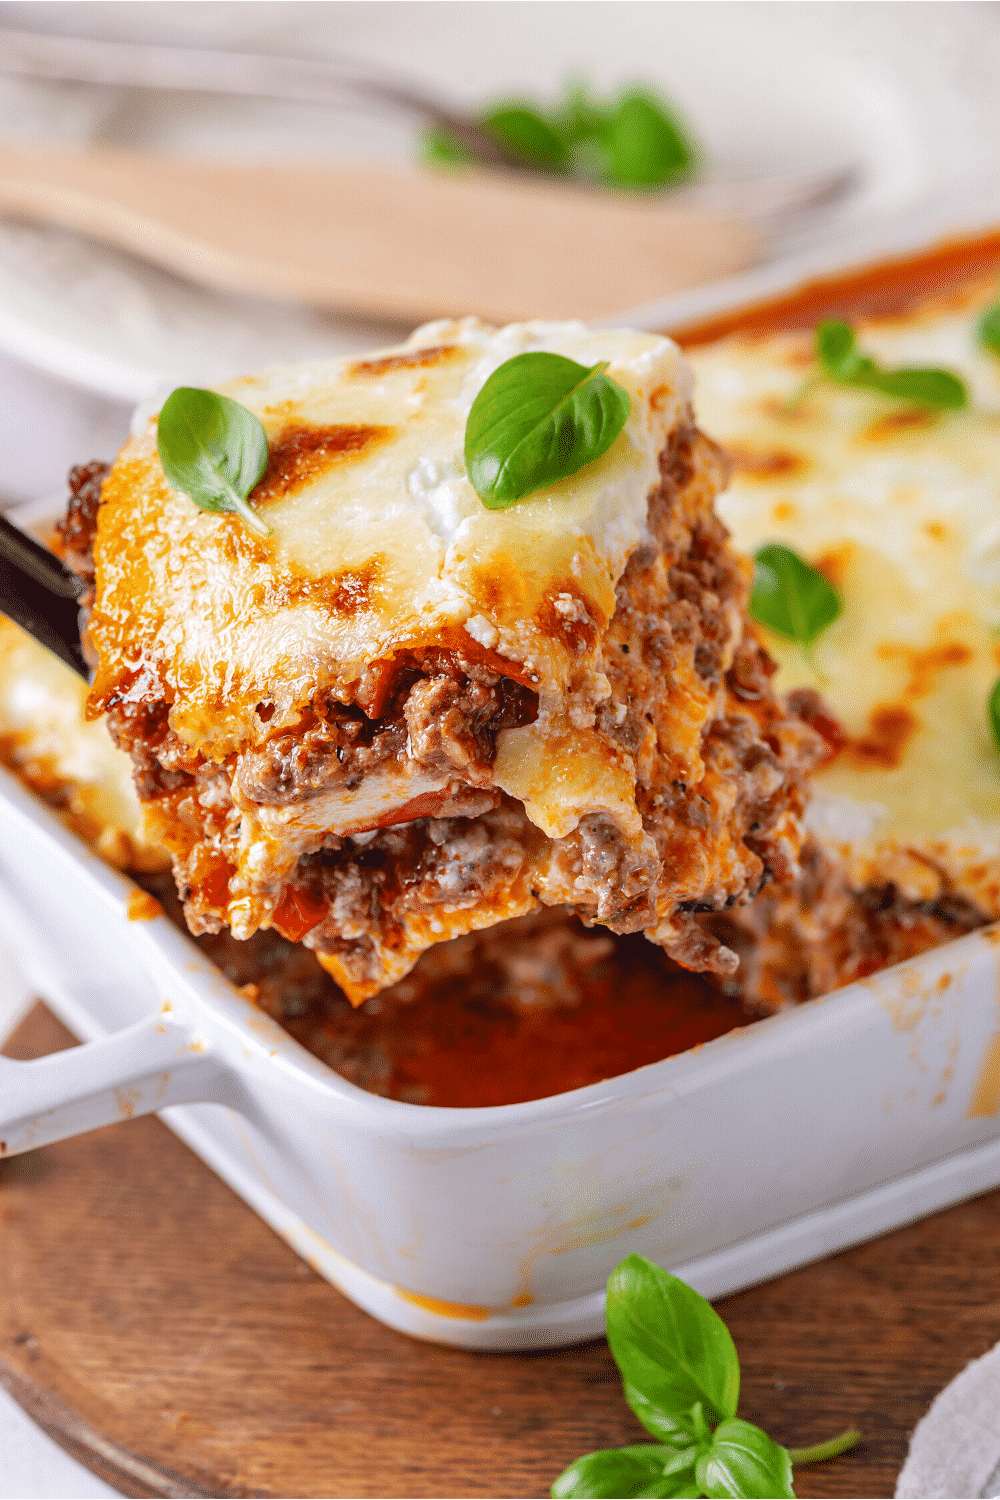 A baking dish filled with lasagna. A piece of lasagna is being taken out of the baking dish.